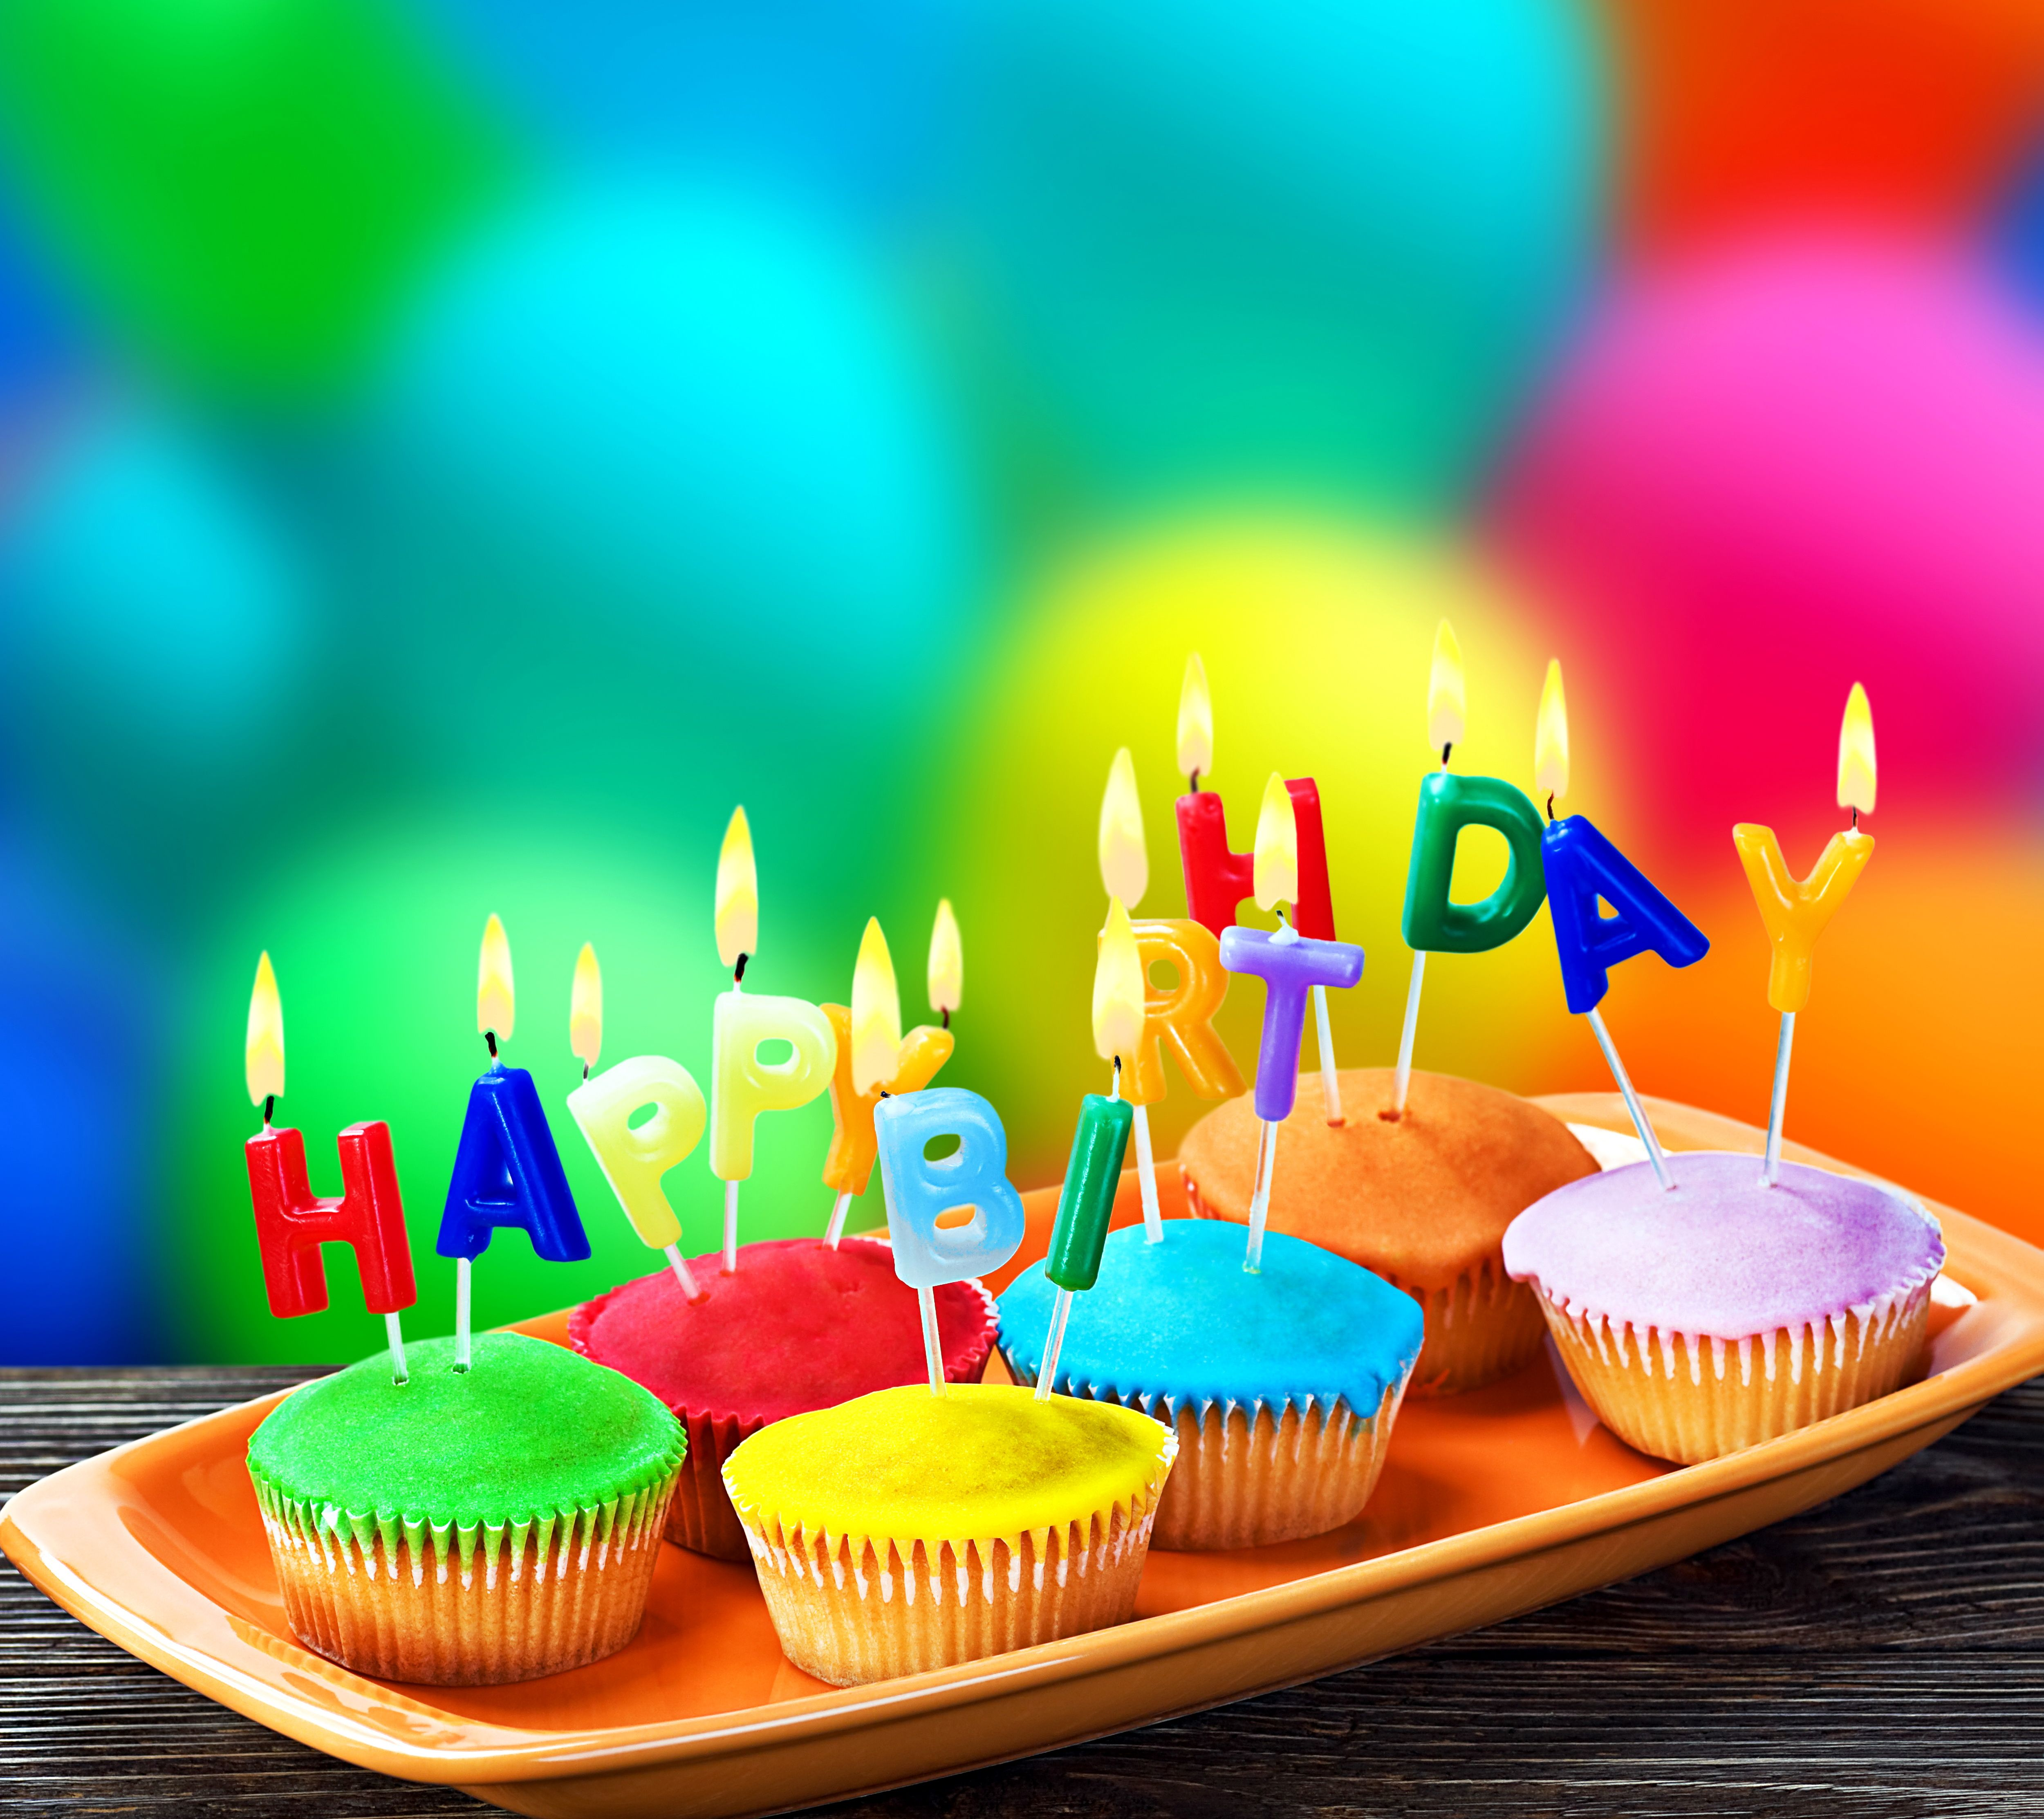 Happy Birthday Wishes: Happy Birthday Images - Google Search